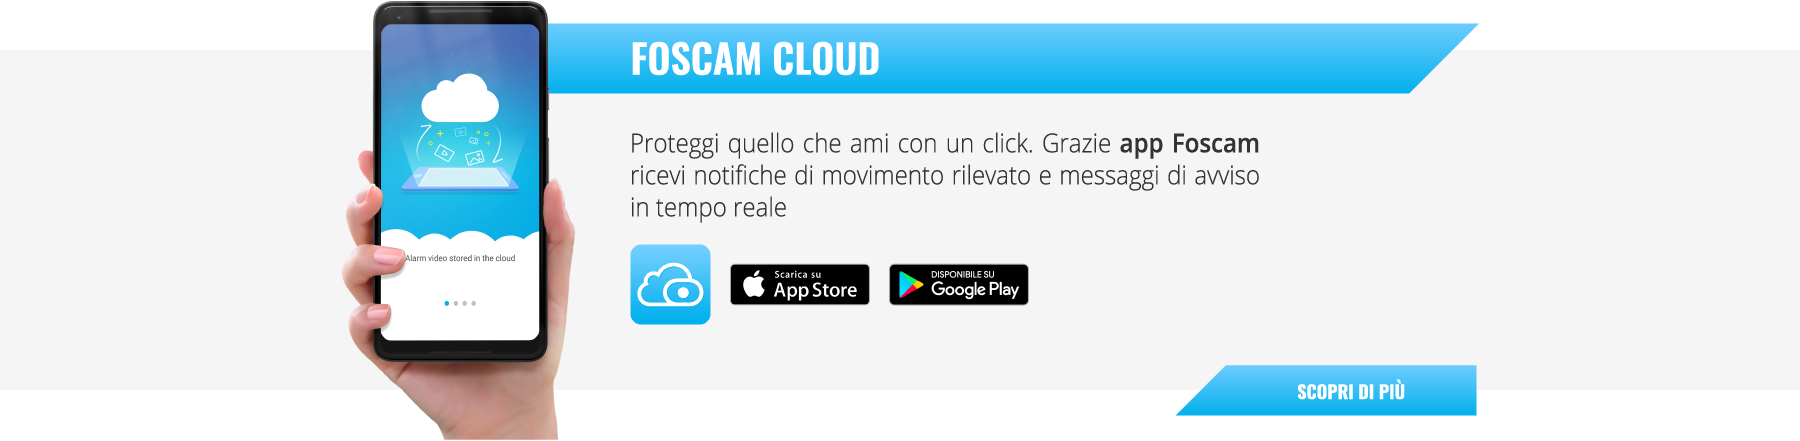 Foscam cloud APP